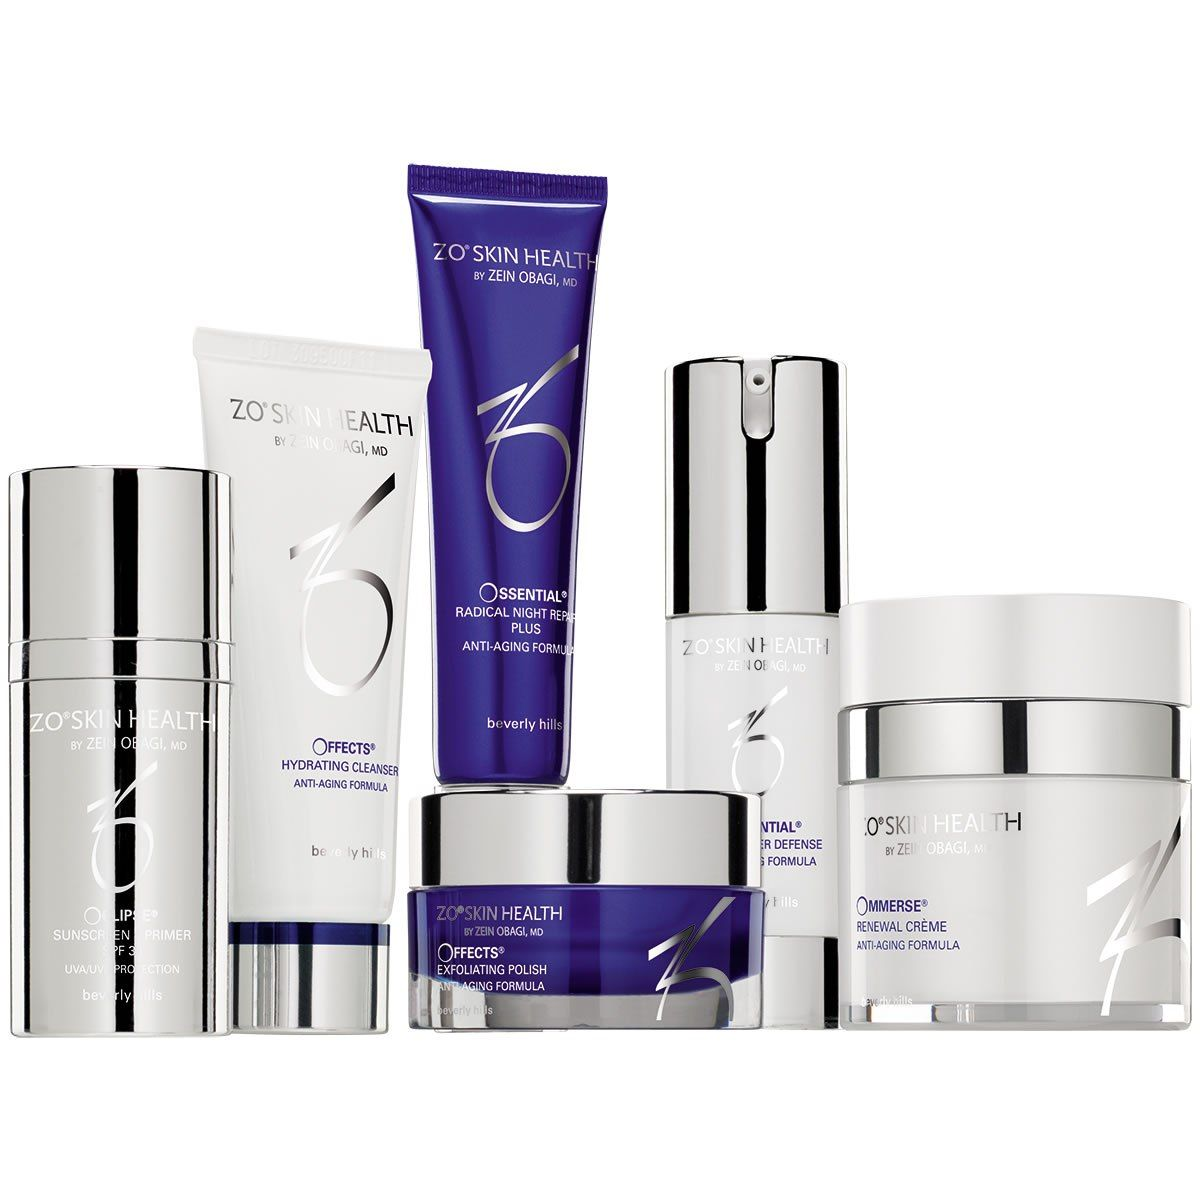 Level III Aggressive AntiAging Program Anti aging